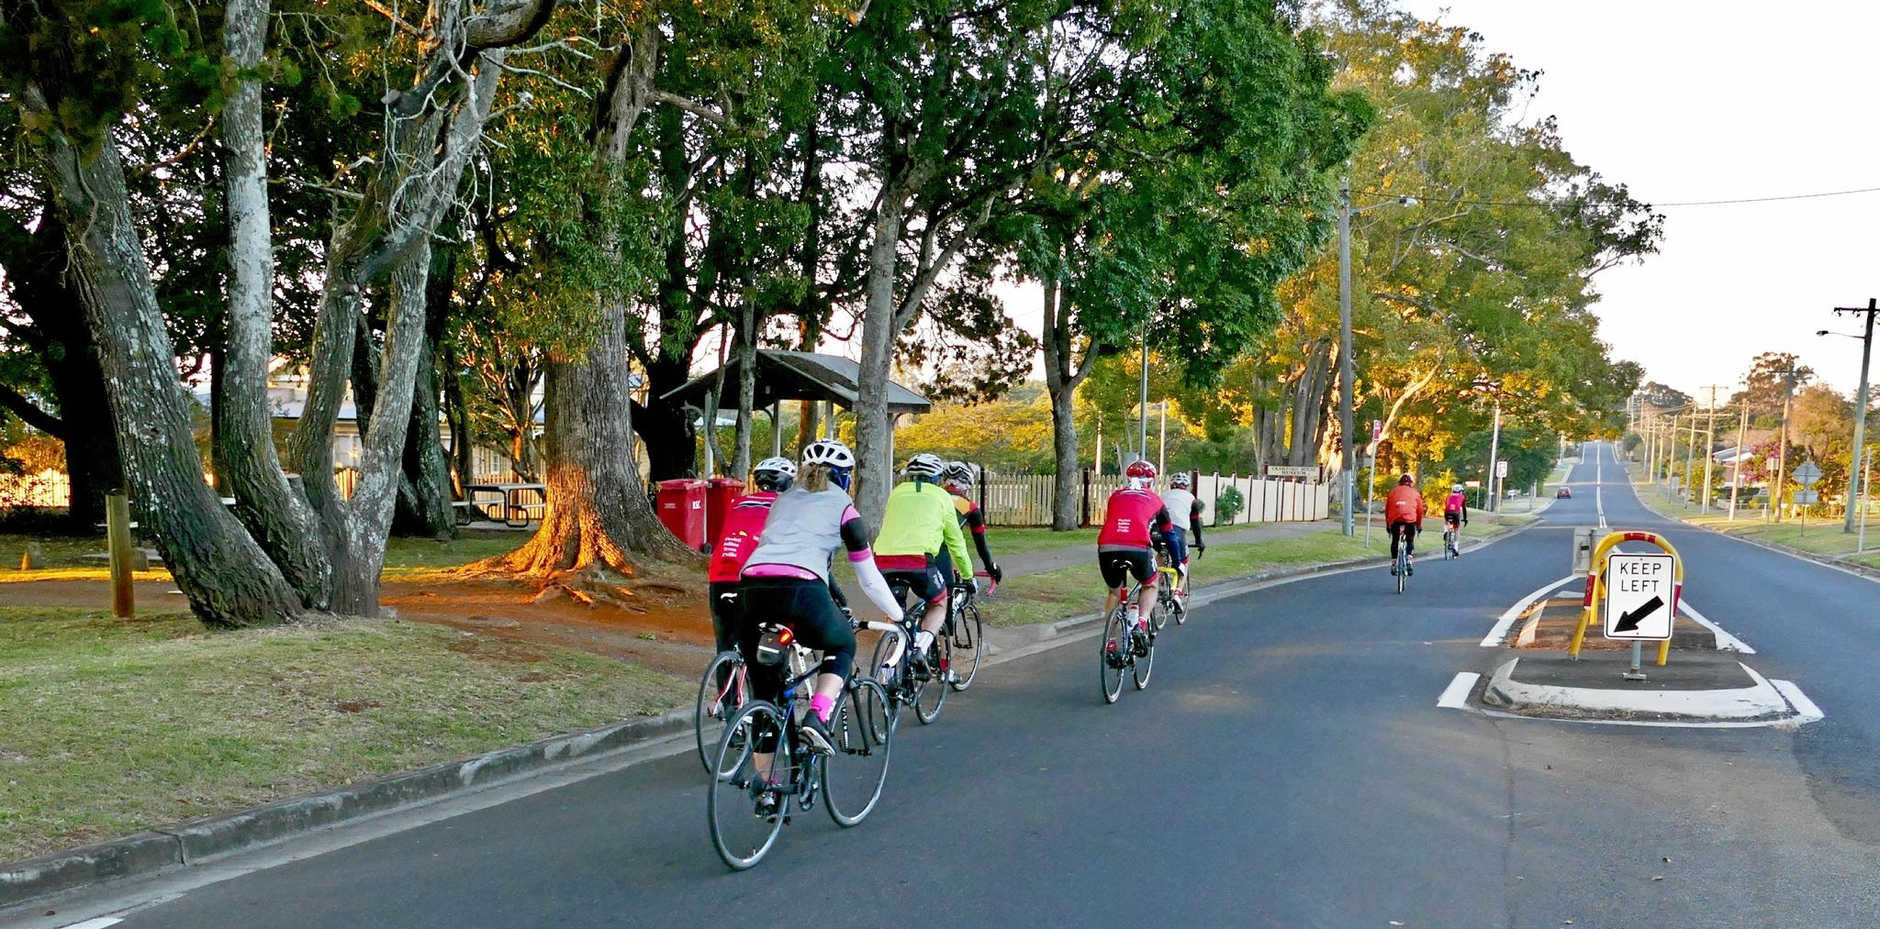 LIGHTS CAMERA ACTION: Bike lights with camera are being used by Northern Rivers cyclists to provide evidence of road rage by aggressive drivers. Like car owners using dashboardcams, the cyclists are hoping poor driving behaviour can be curtailed.